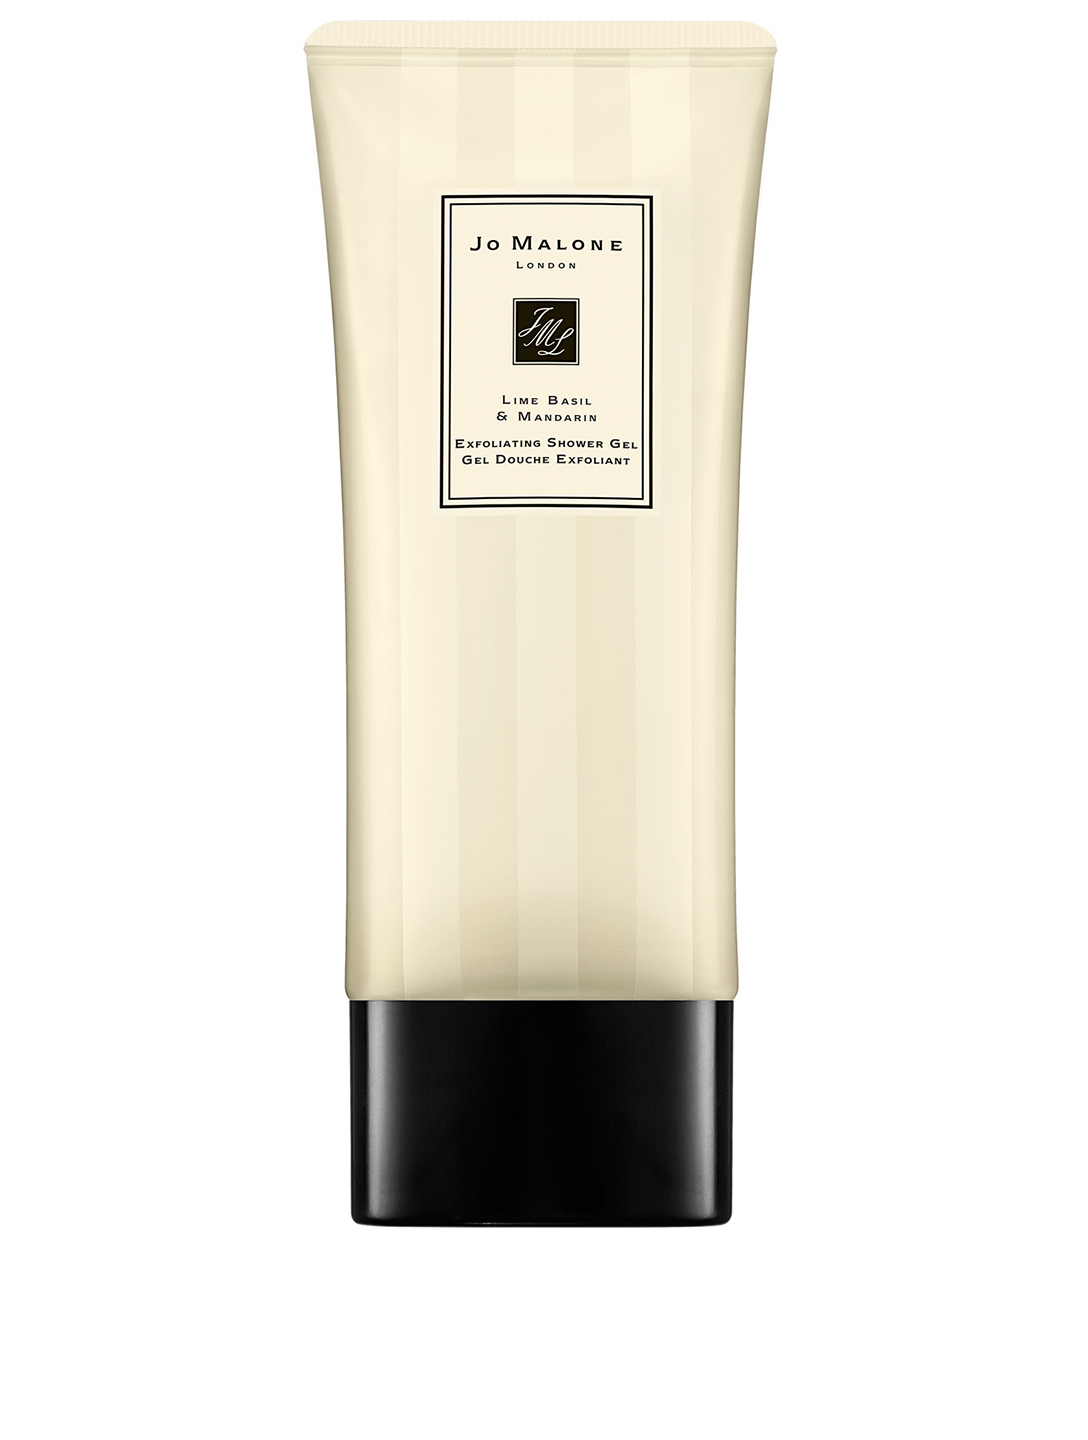 JO MALONE LONDON Lime Basil & Mandarin Exfoliating Shower Gel Beauty